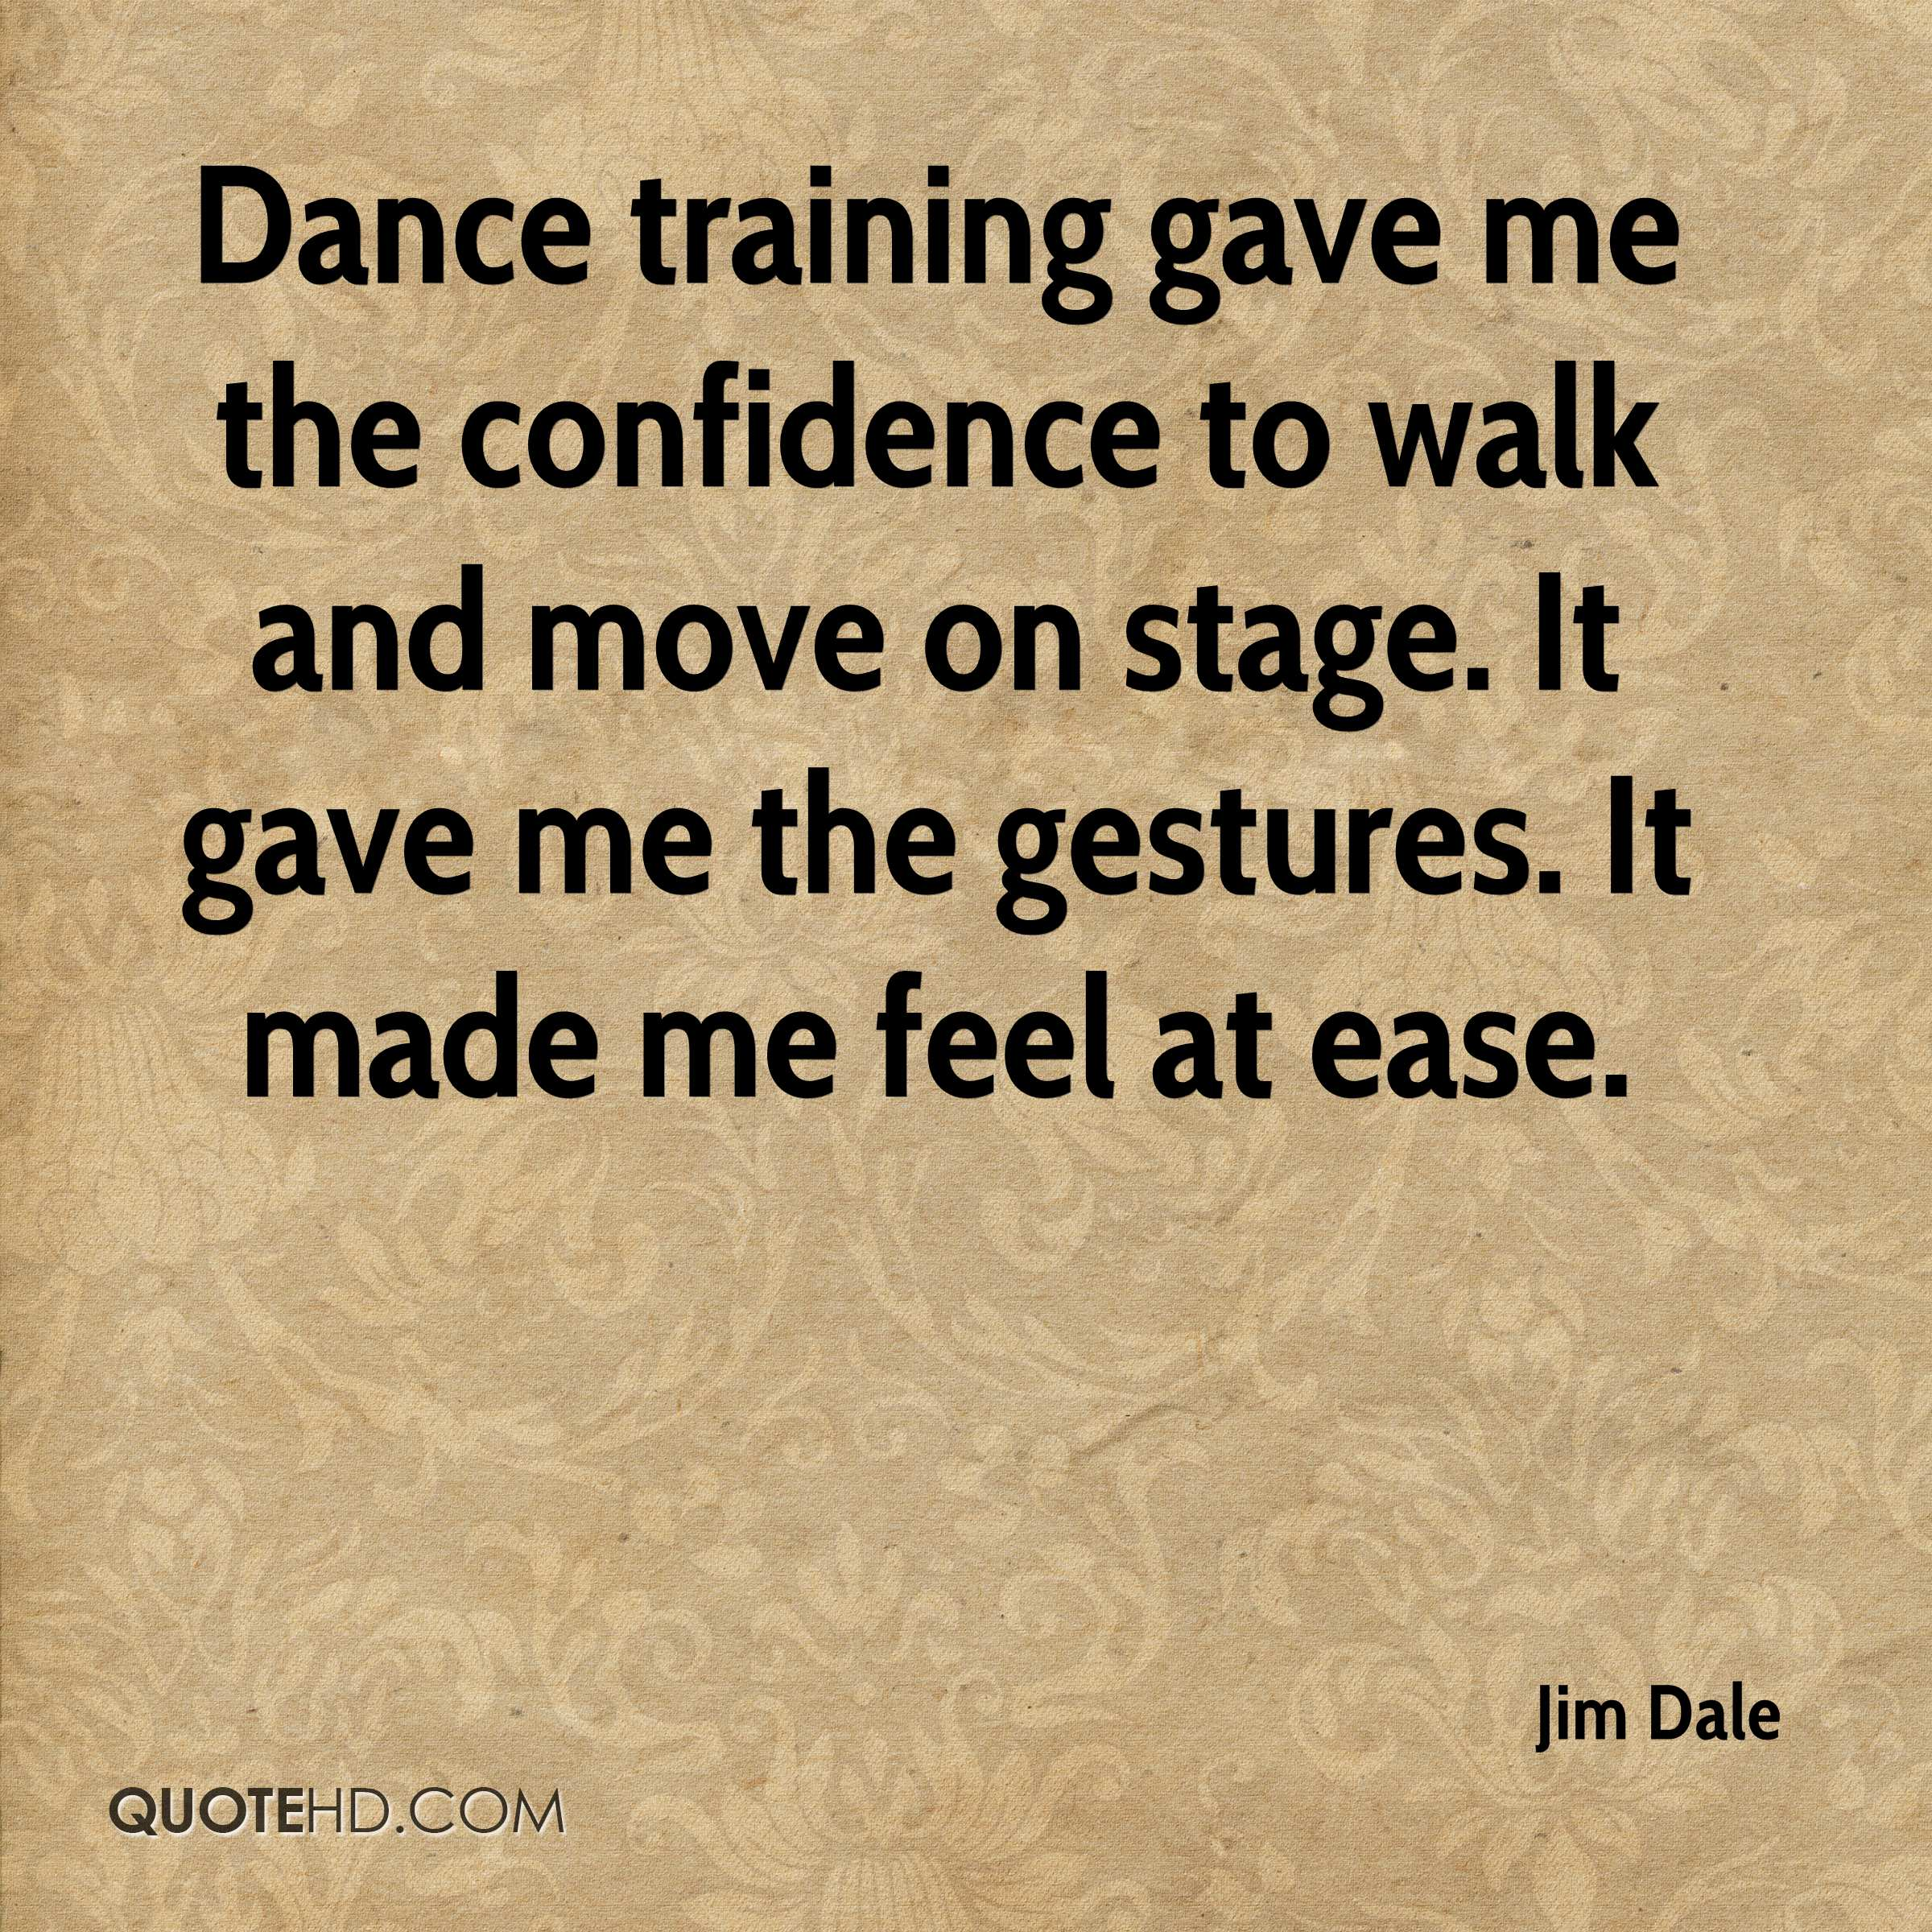 Dance training gave me the confidence to walk and move on stage. It gave me the gestures. It made me feel at ease.